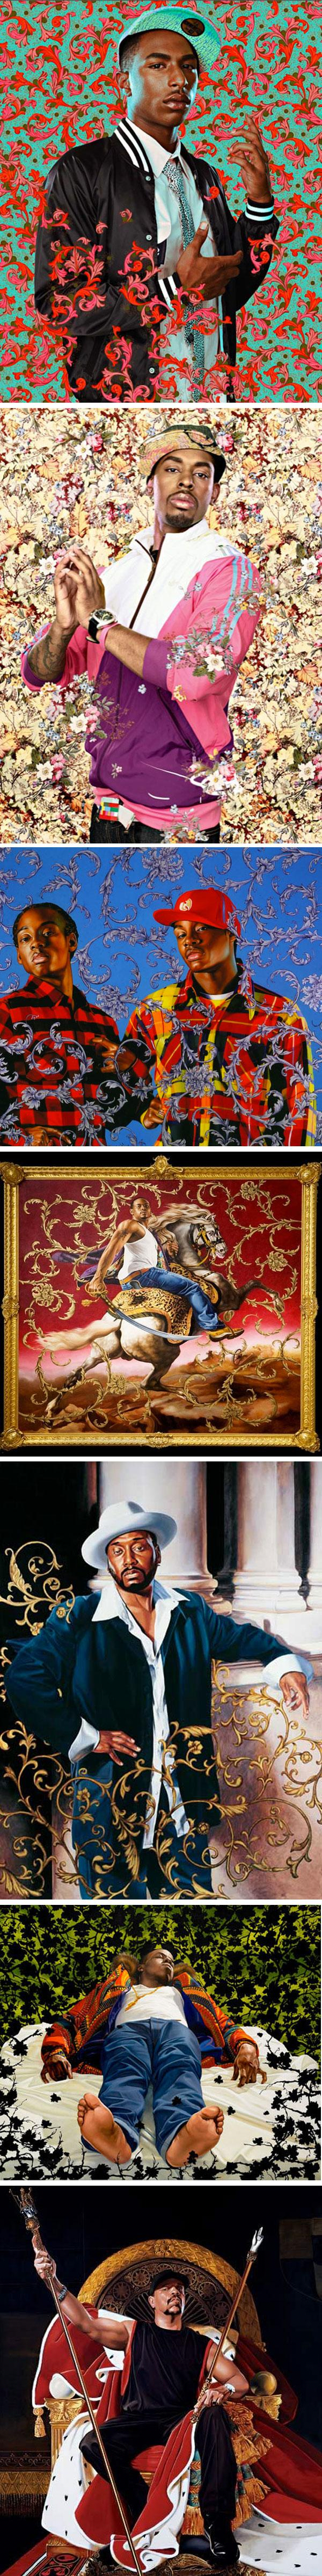 kehinde wiley | MRG LAB BLOG creative experience